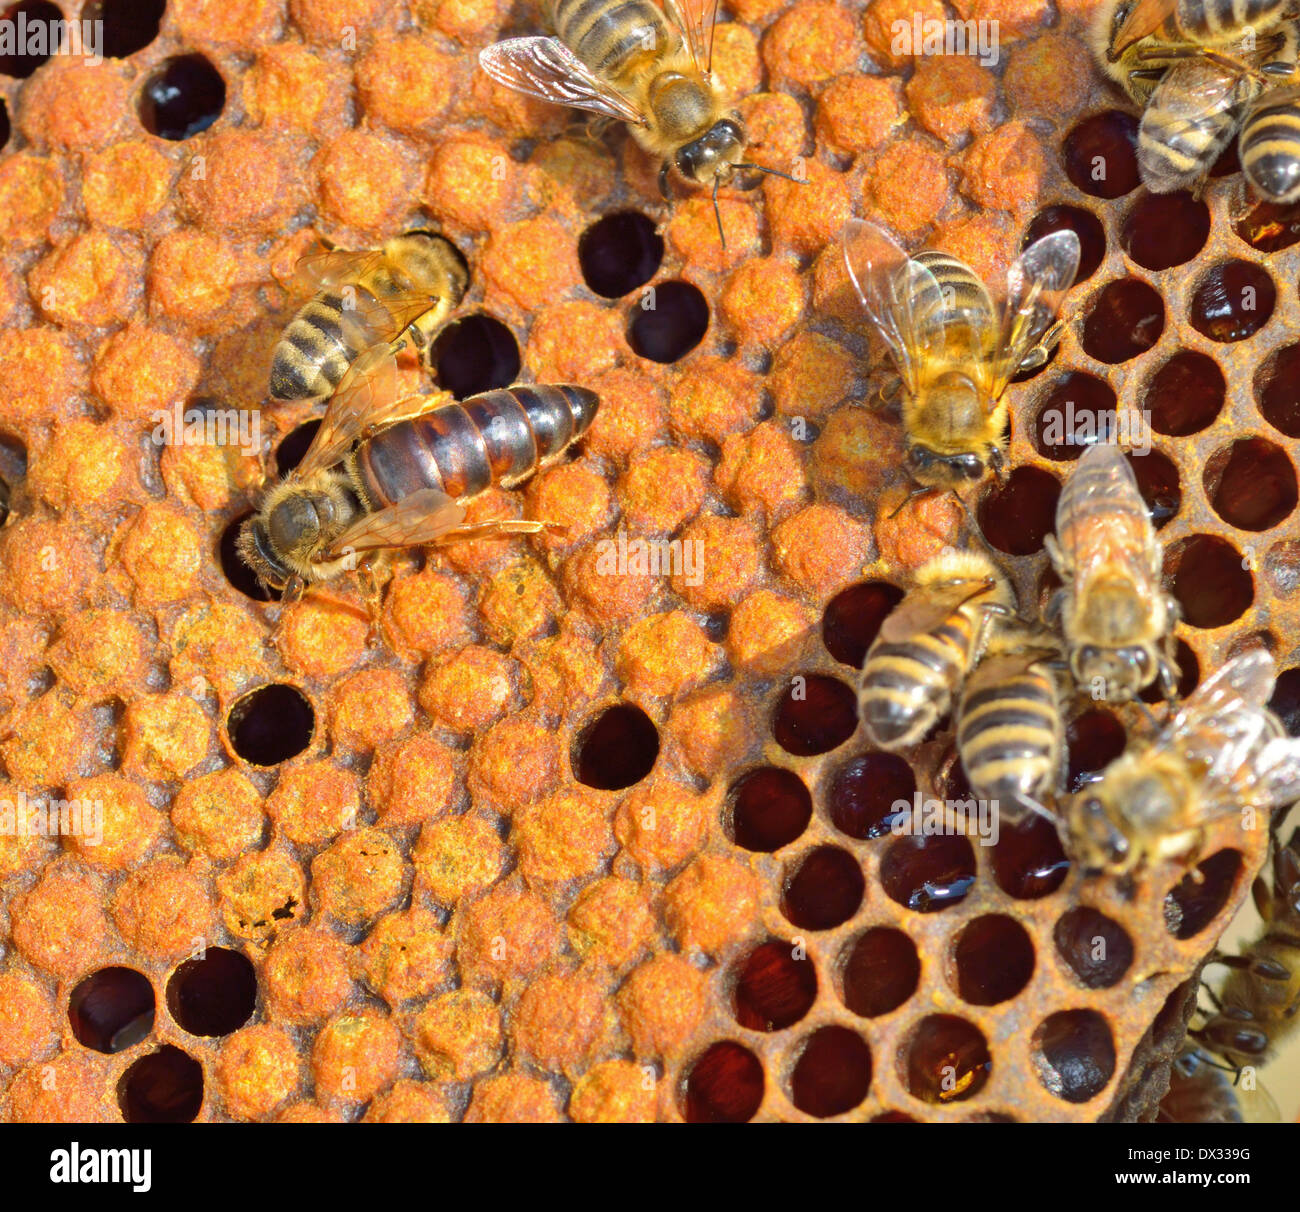 Queen bee on honeycomb - Stock Image